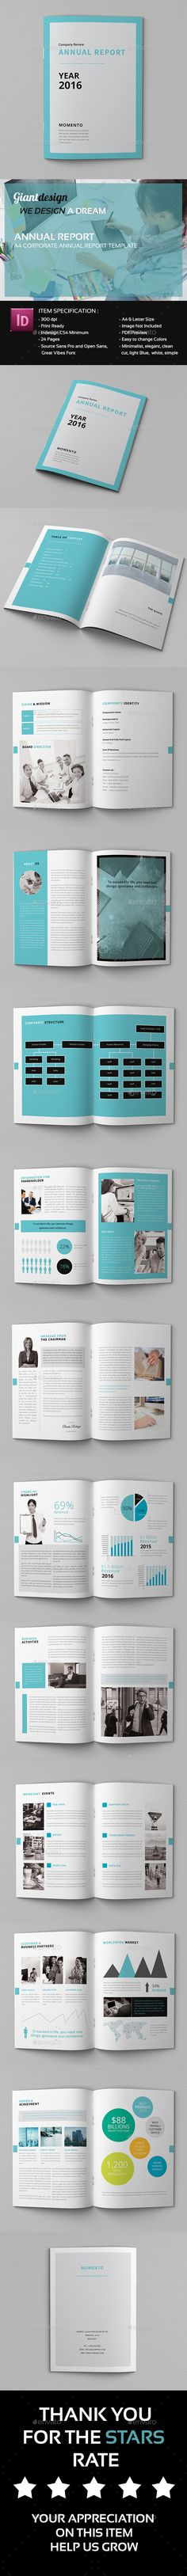 Annual Report Template InDesign INDD. Download here: http://graphicriver.net/item/annual-report/14644132?ref=ksioks